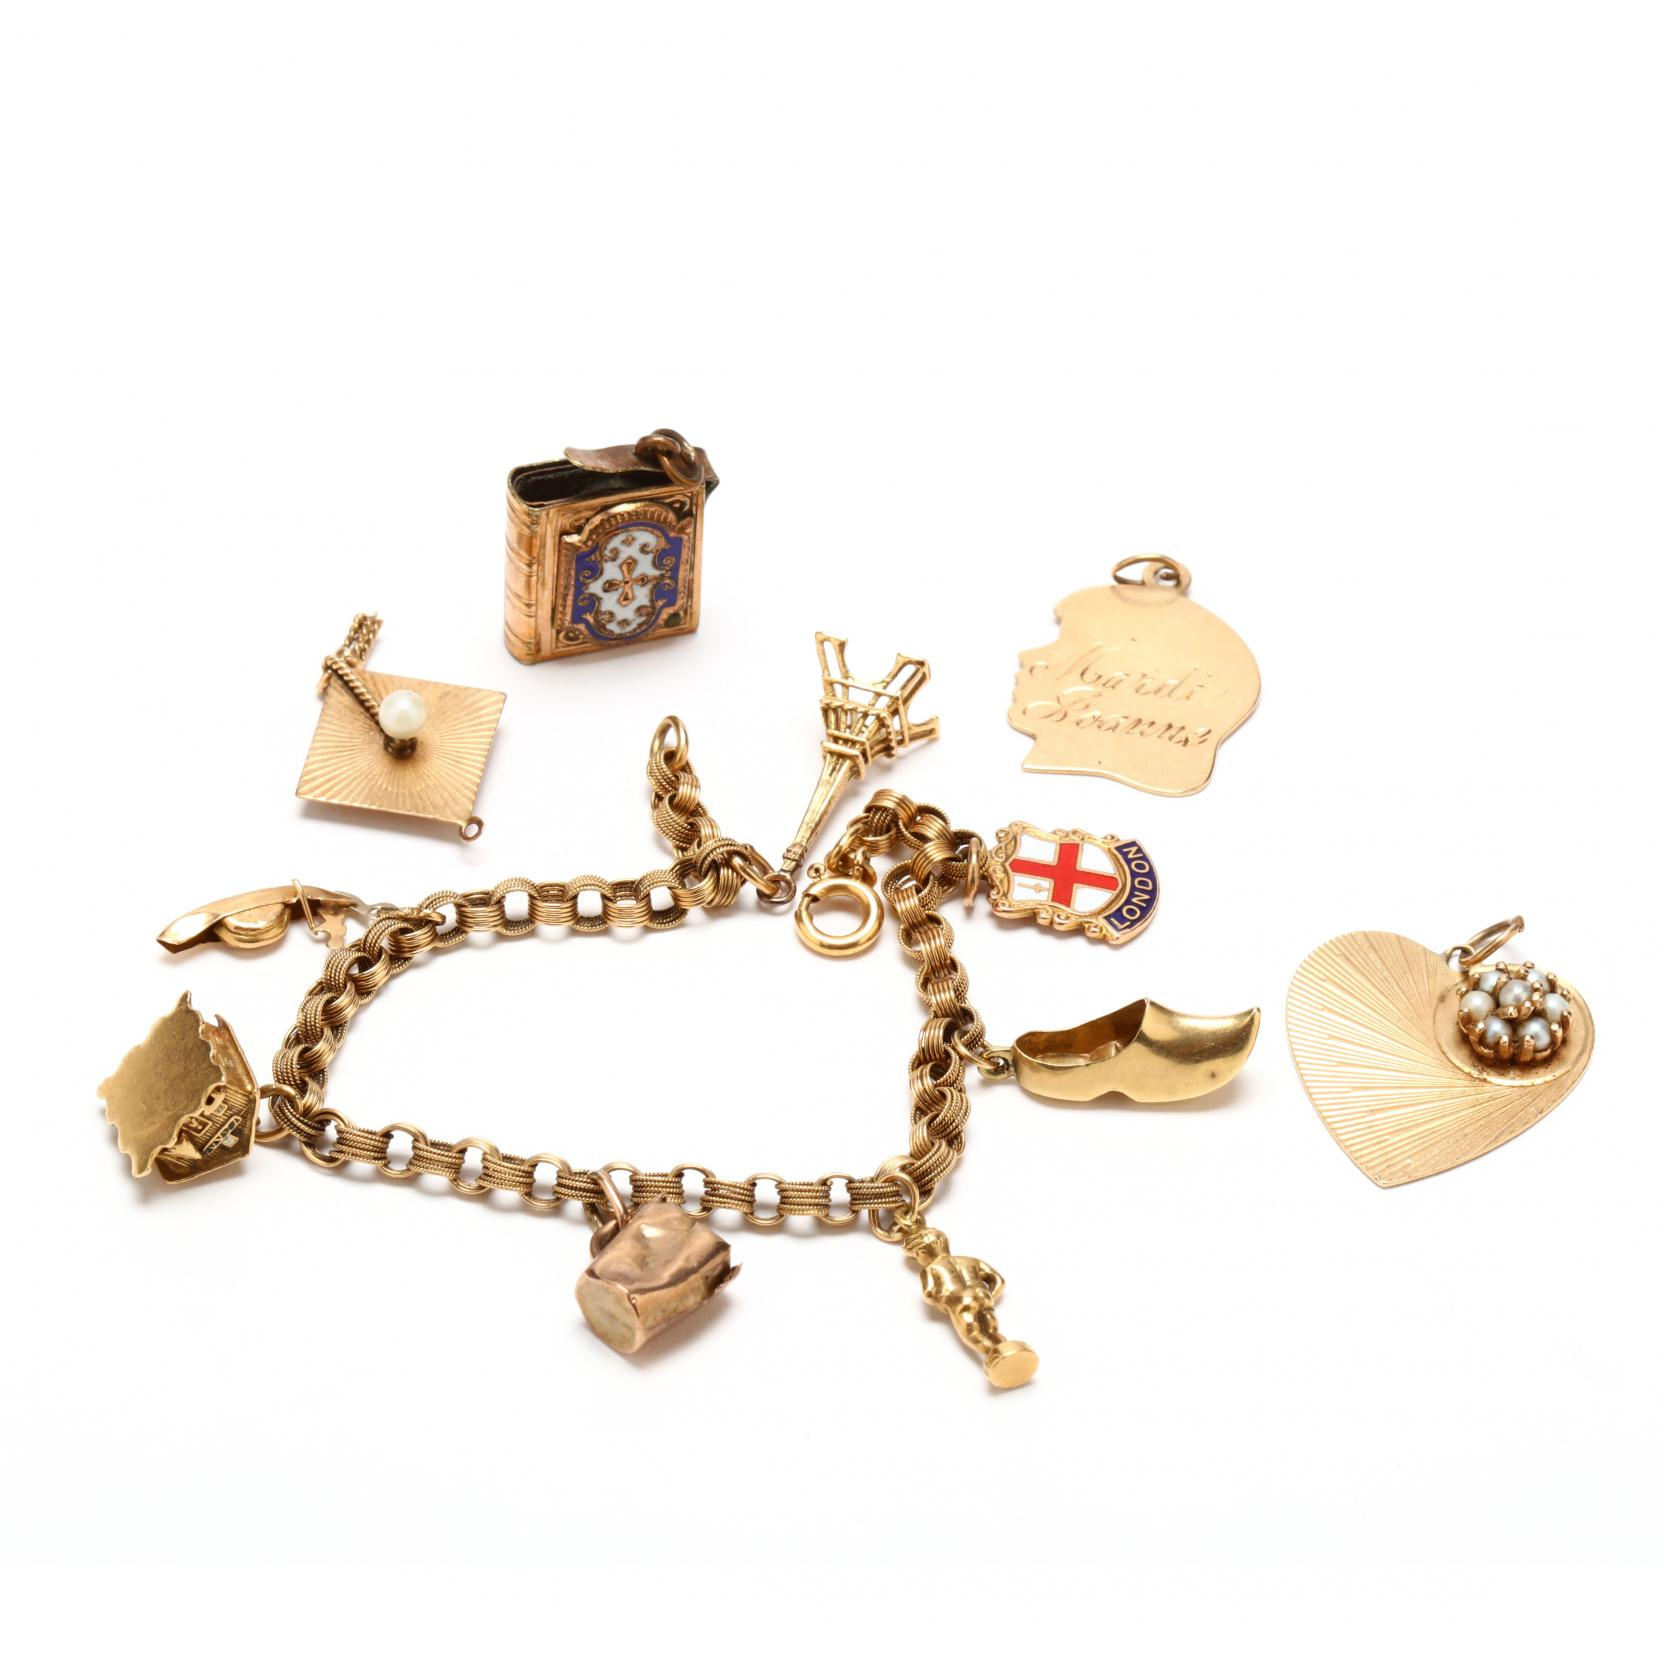 18kt-gold-charm-bracelet-with-charms